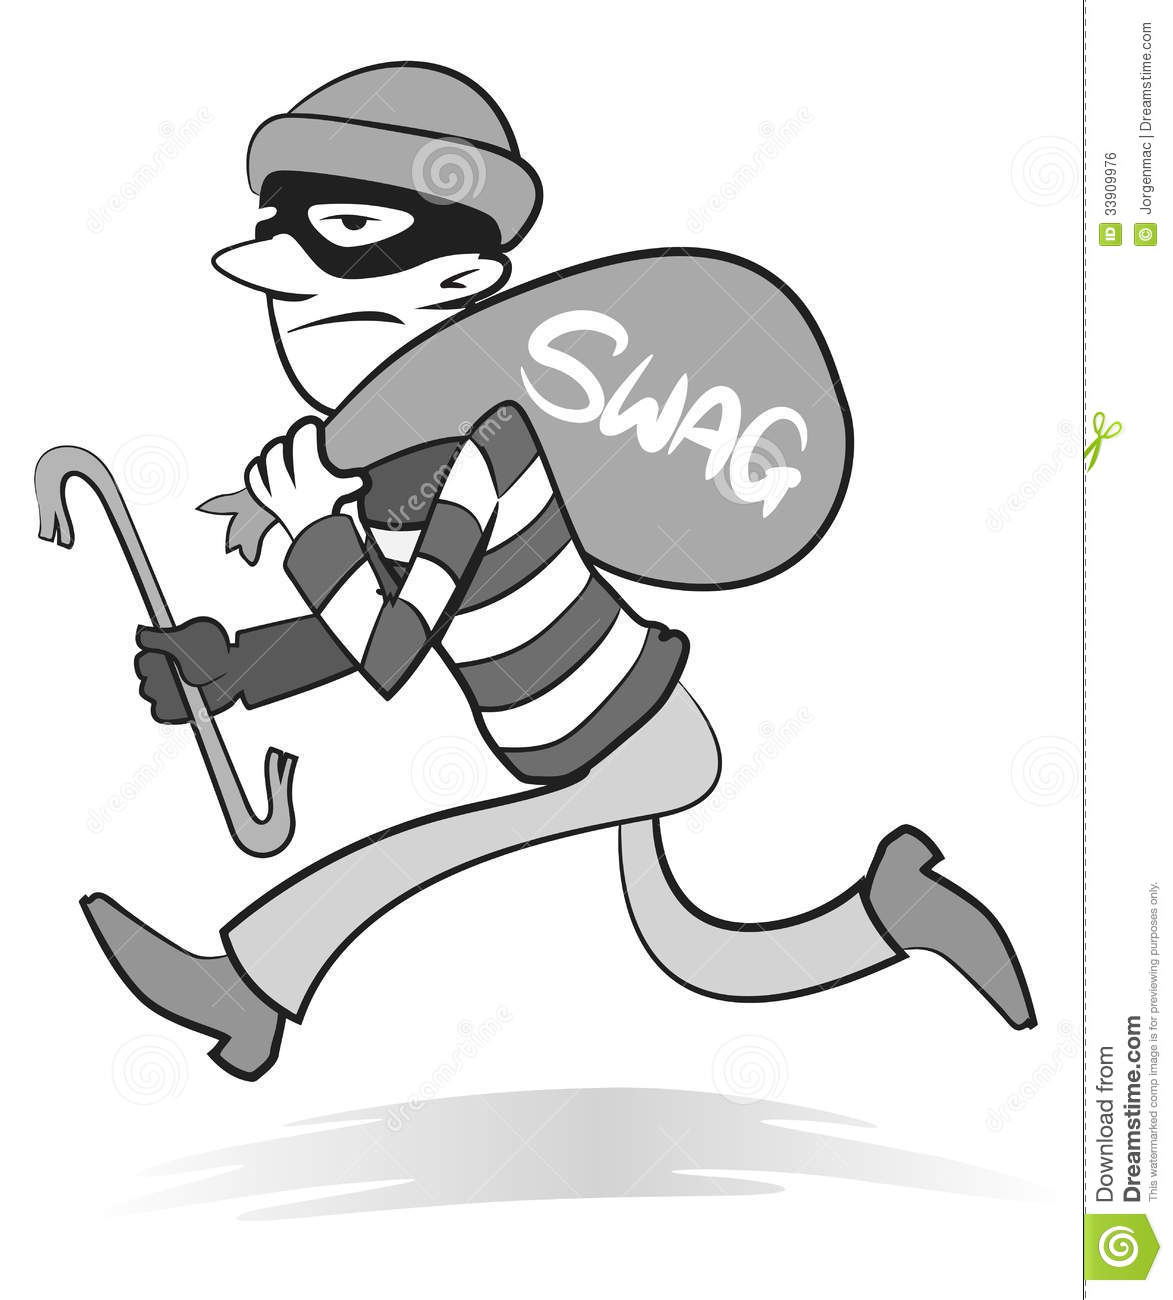 vintage-robber-retro-style-illustration-burglar-running-away- - Burglar PNG Swag